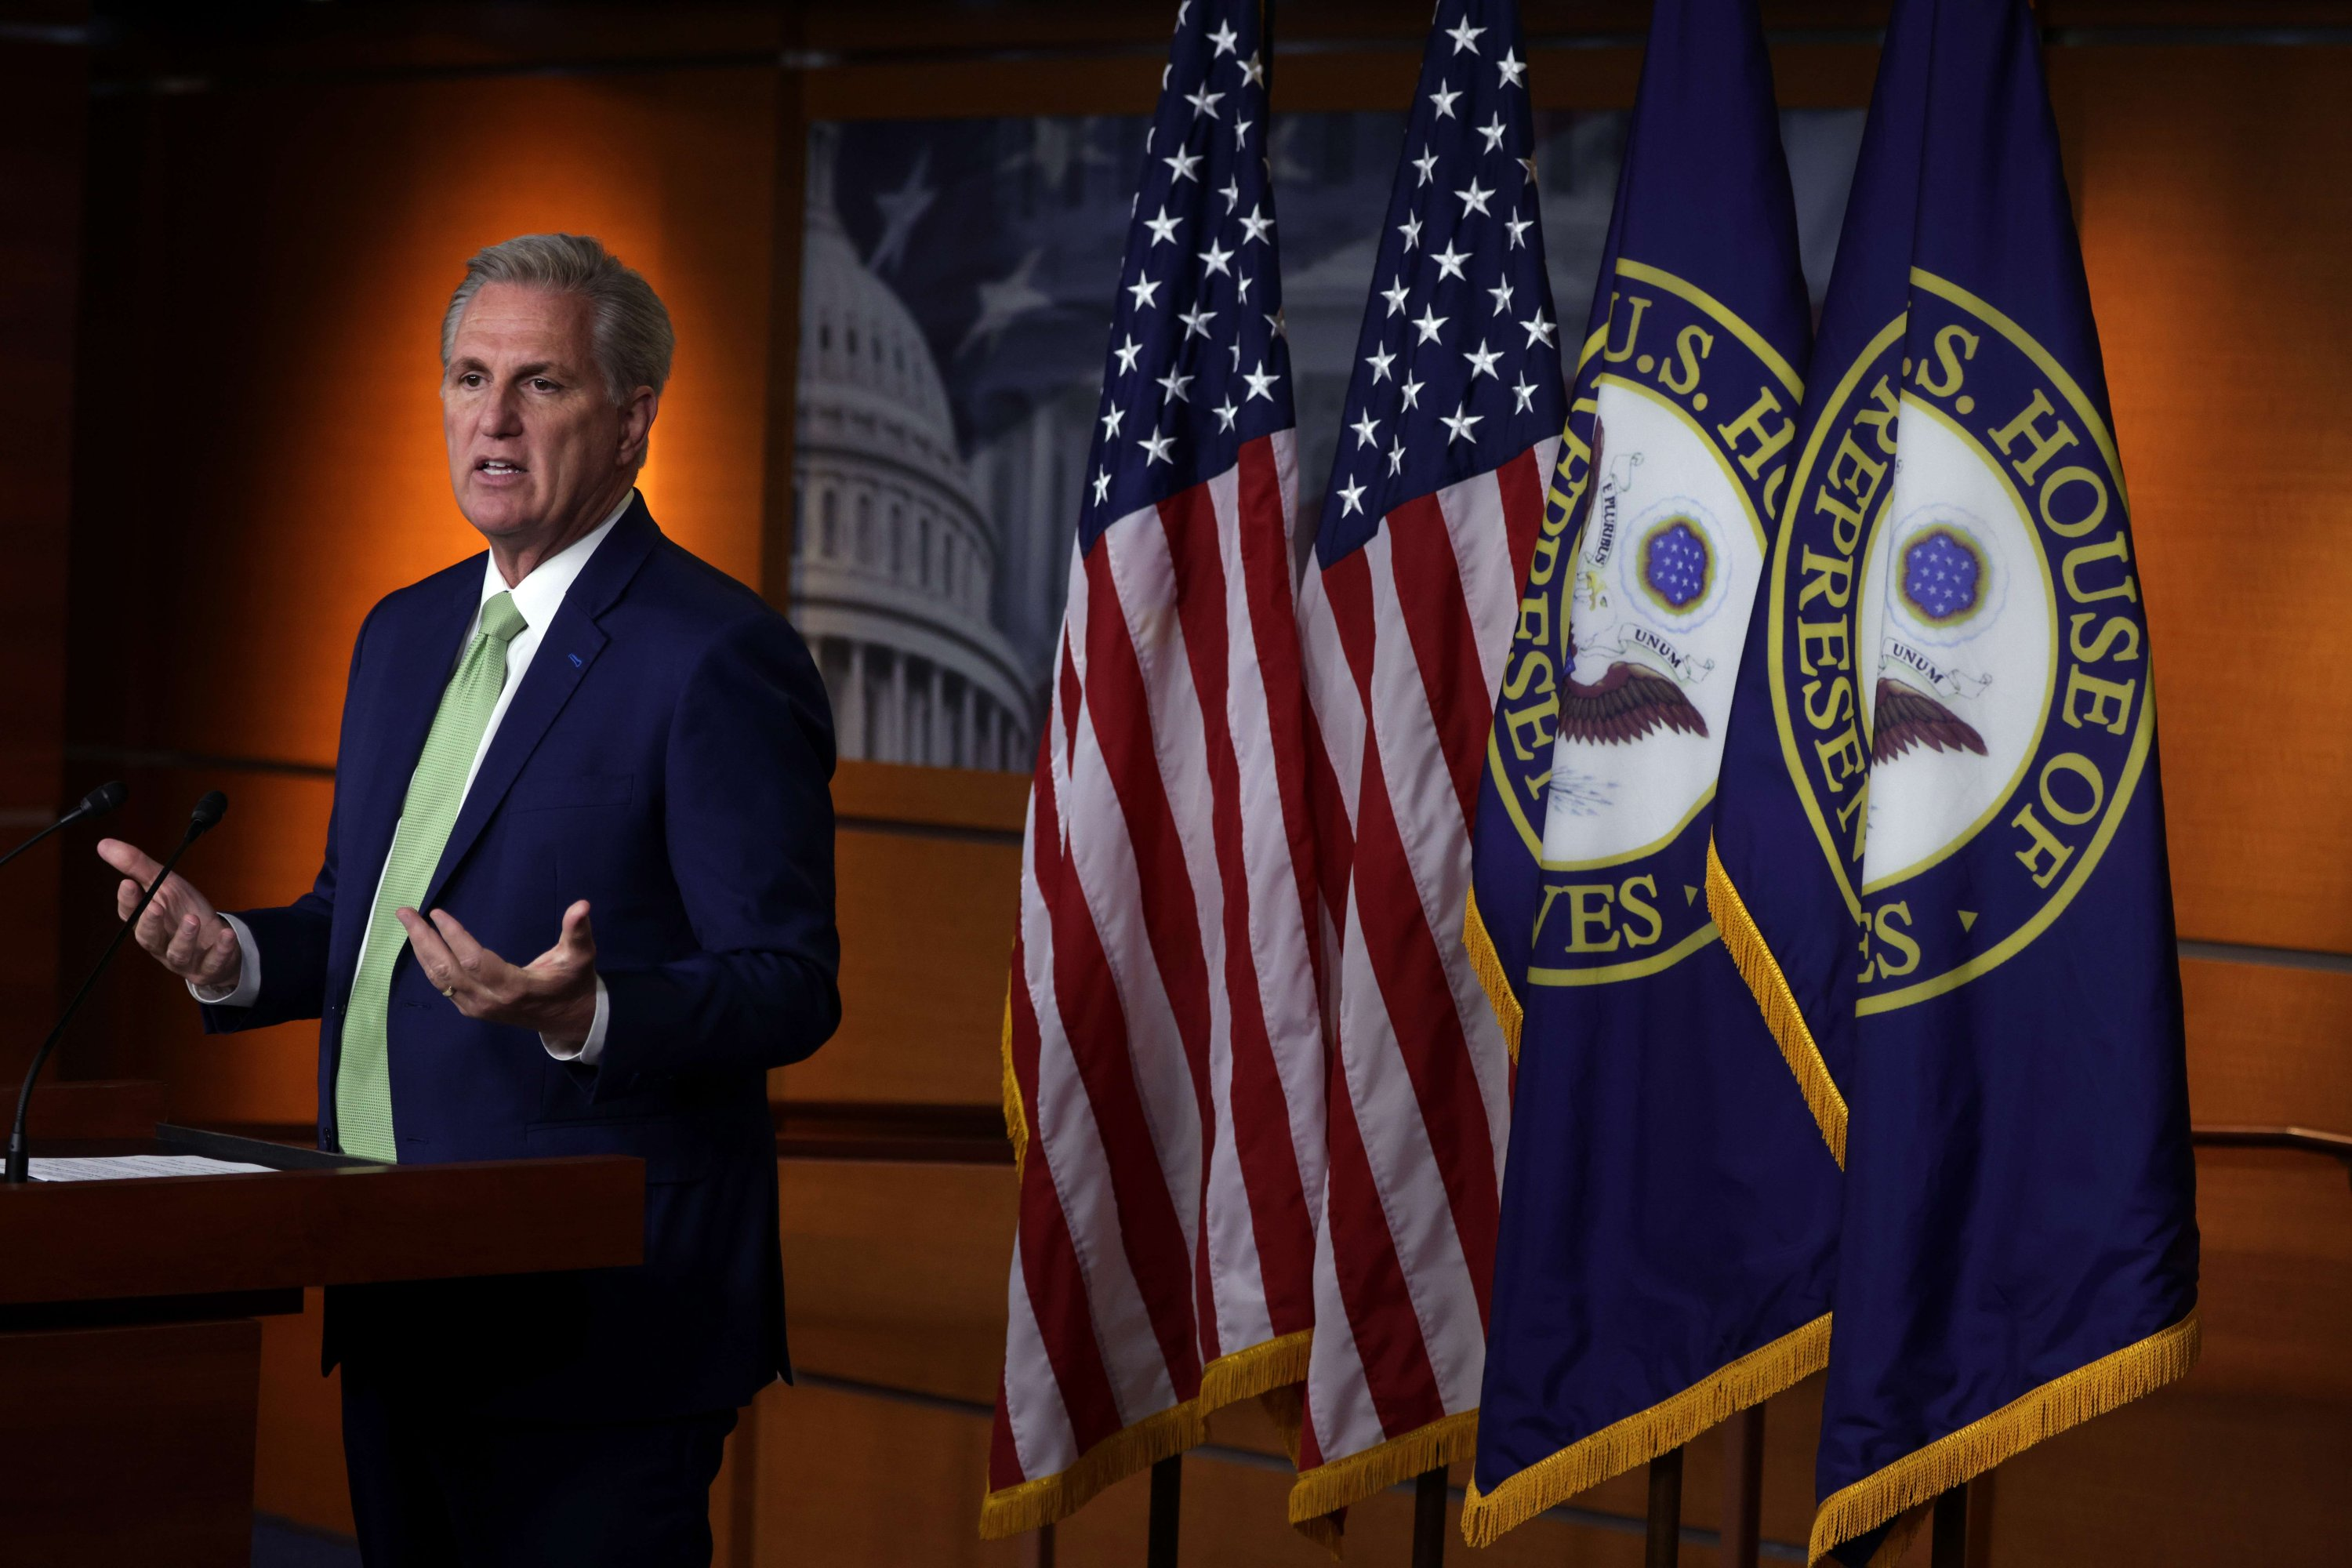 U.S. House Minority Leader Rep. Kevin McCarthy (R-CA) speaks during a weekly news conference at the U.S. Capitol in Washington, D.C., the U.S., April 15, 2021. (AFP Photo)